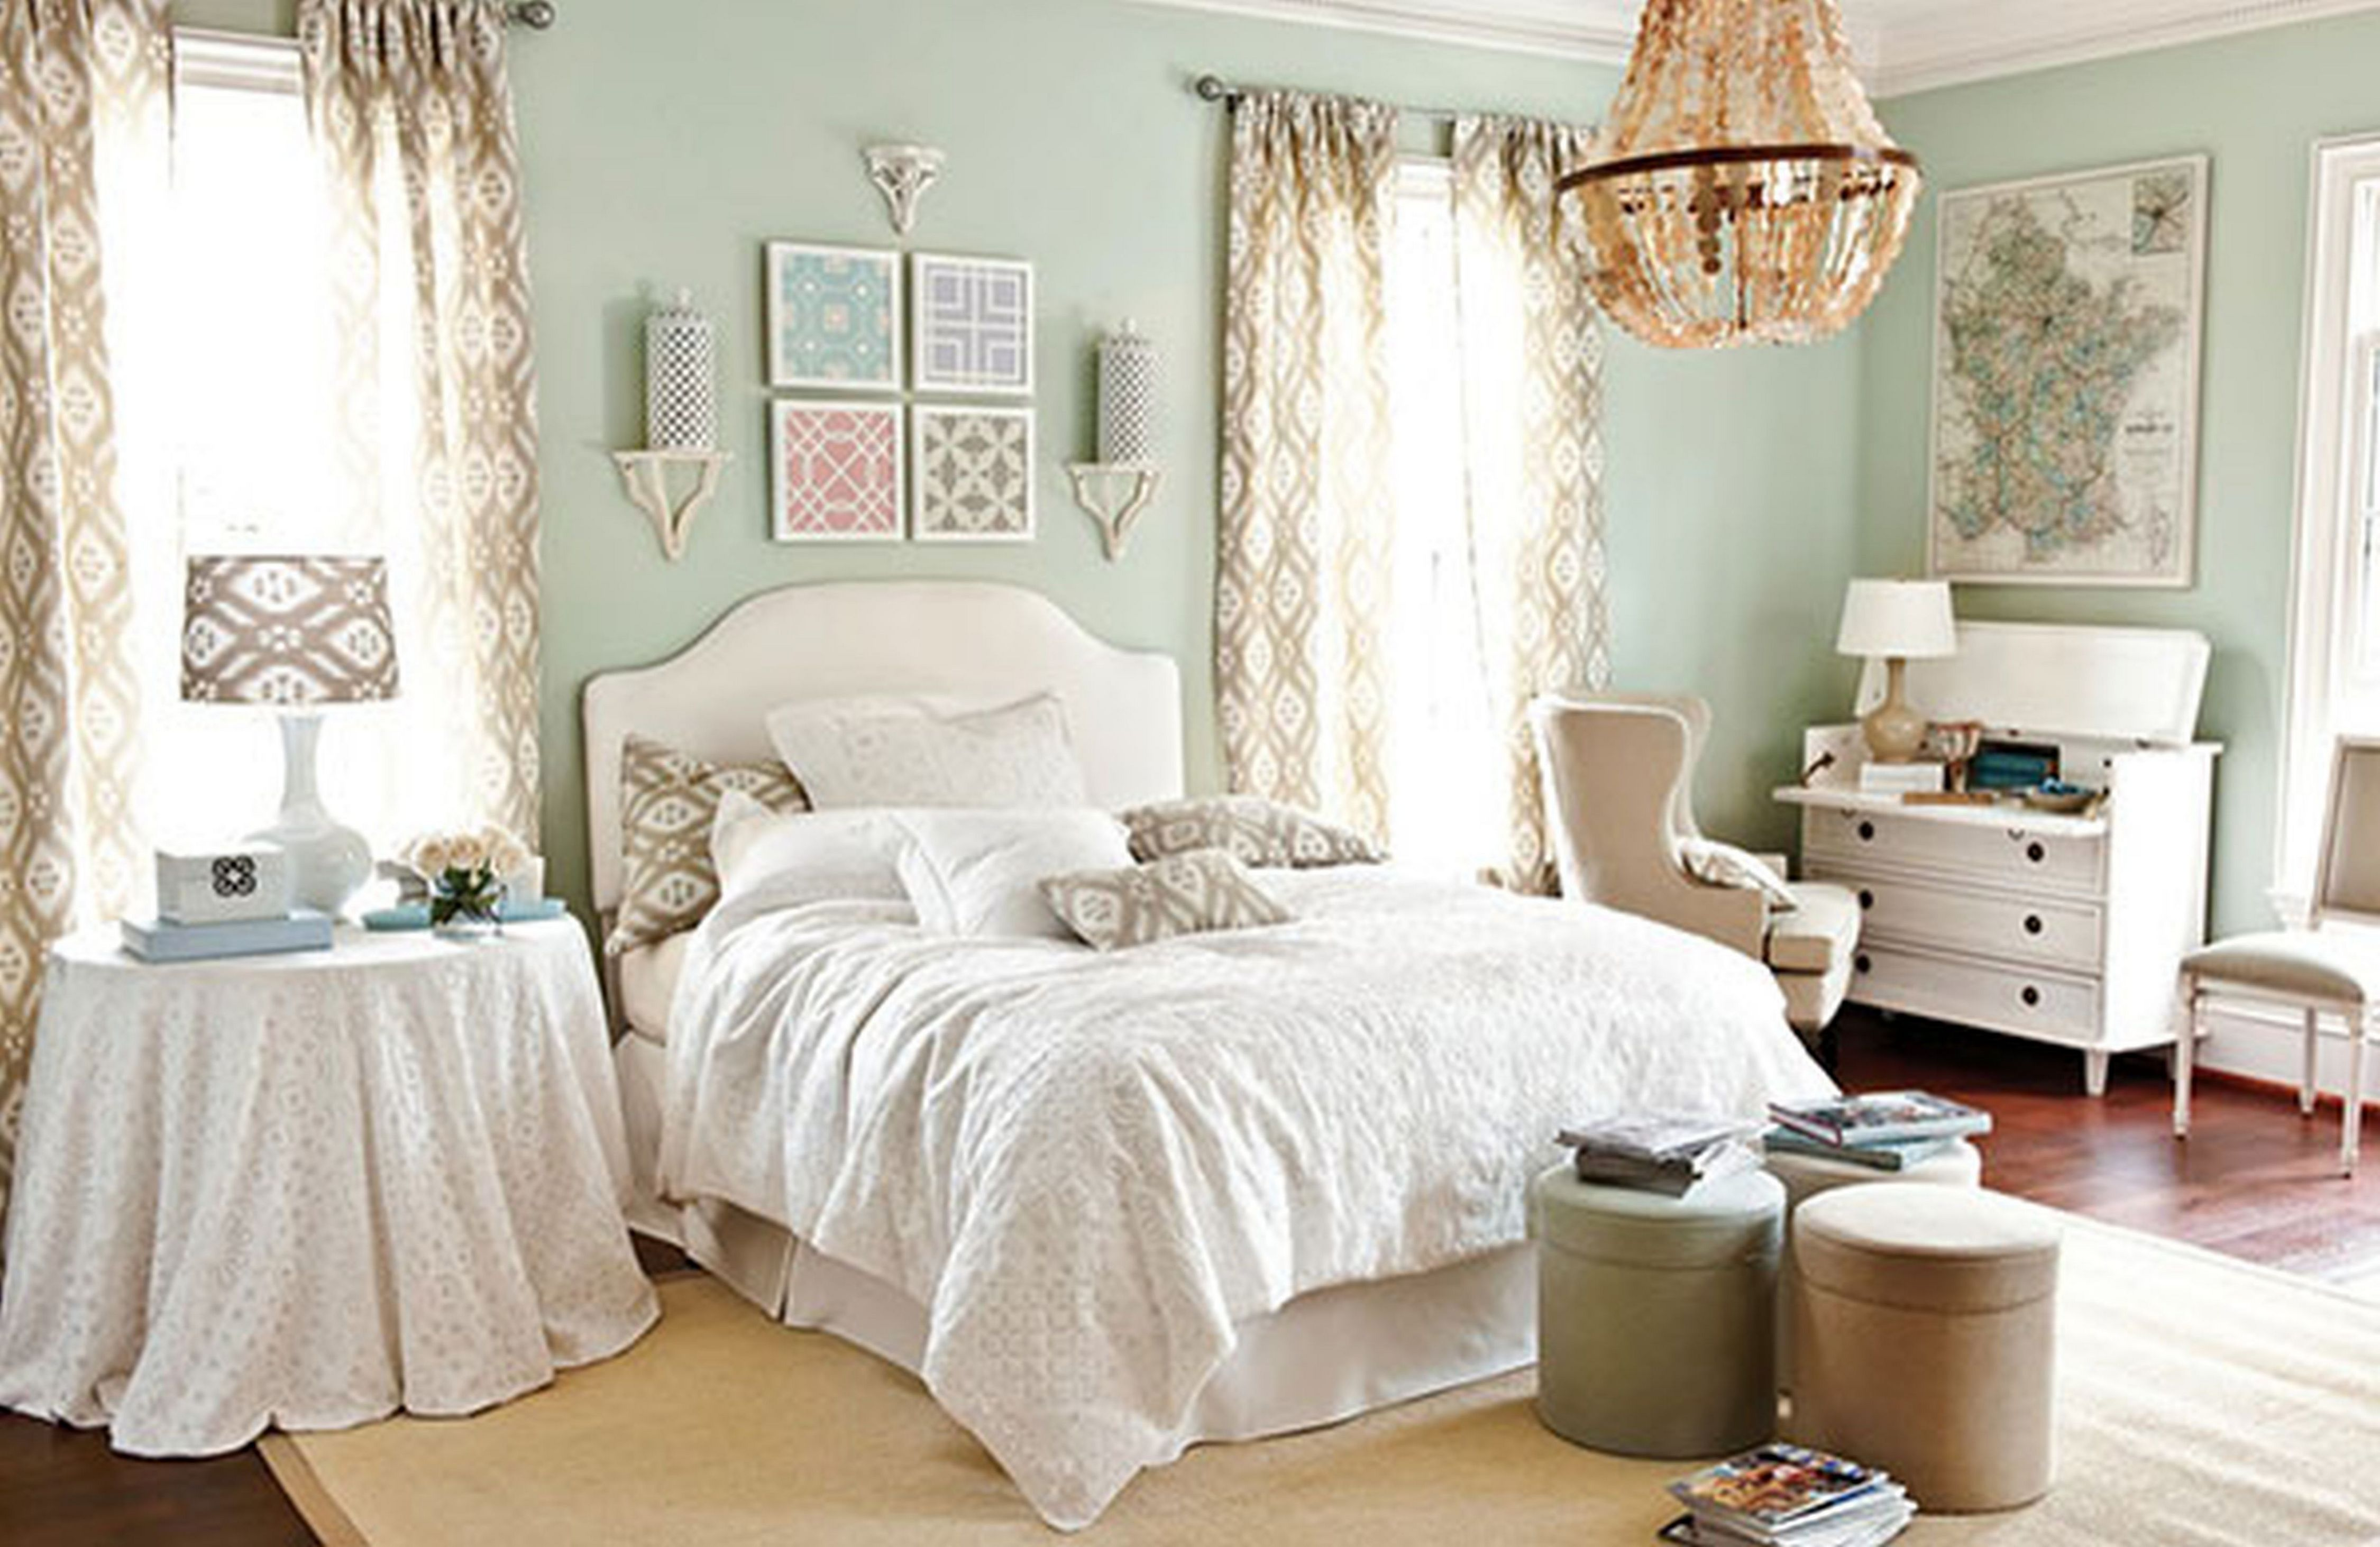 33 The 30 Second Trick For Cute Bedroom Ideas For 20 Year Olds Woman Bedroom Diy Baby Room Decor Pinterest Room Decor